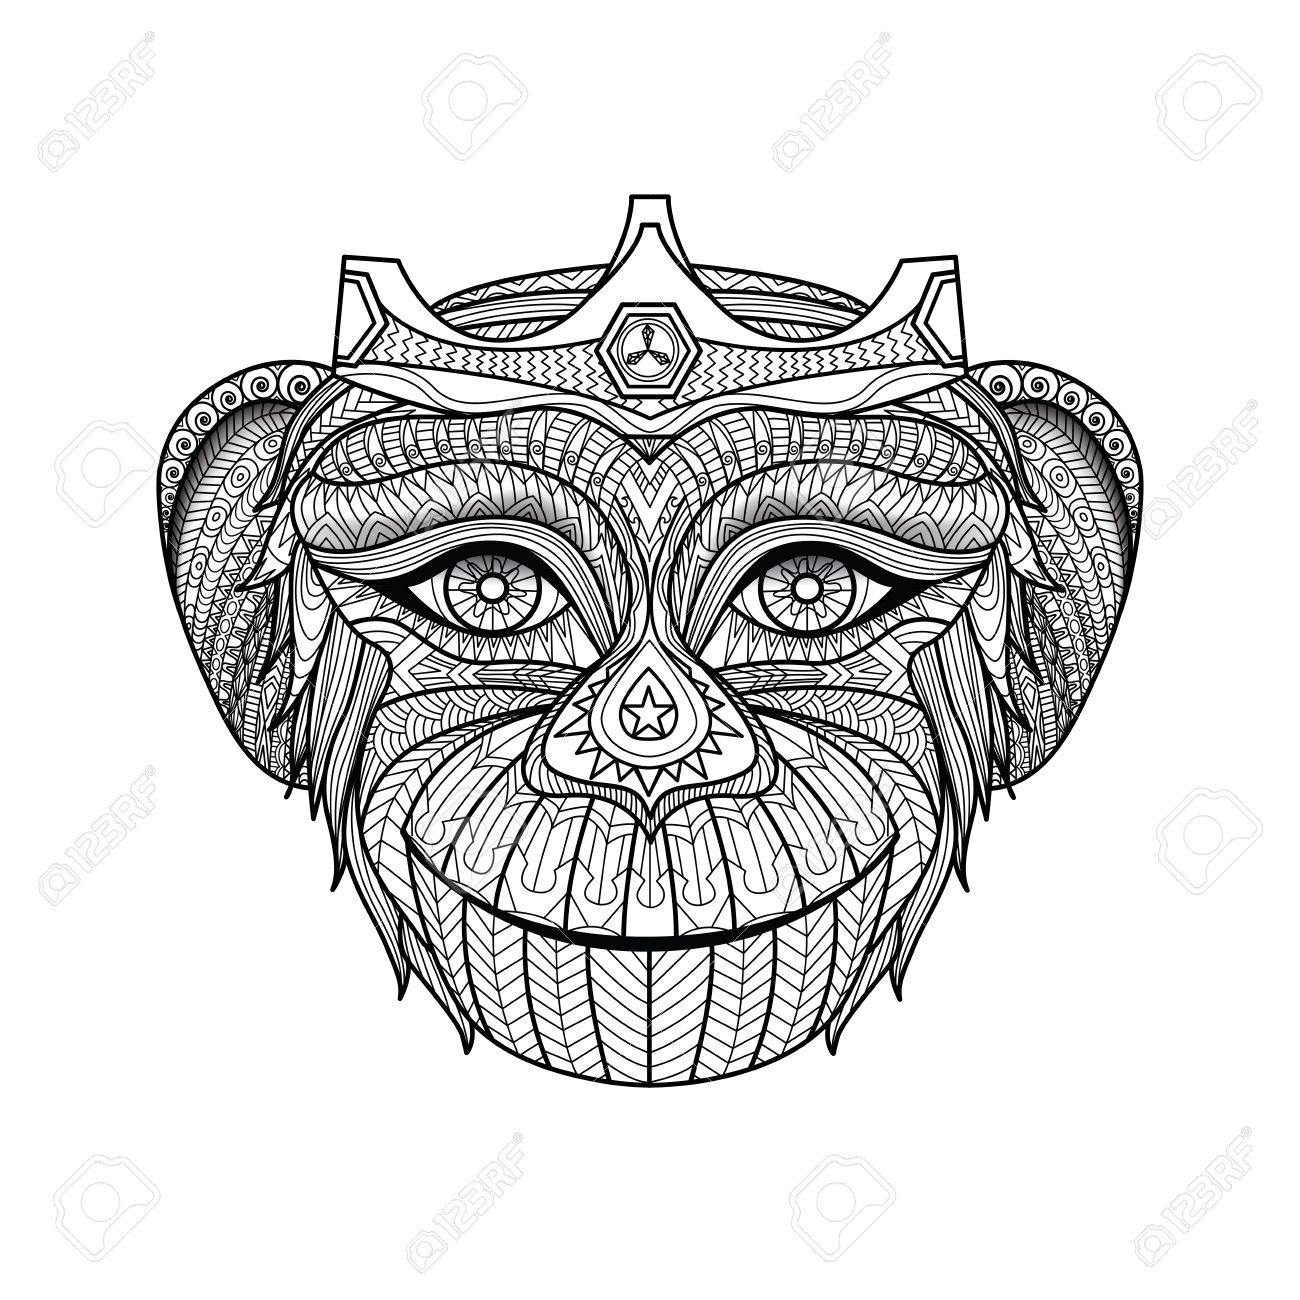 hand drawn king of monkeys coloring page image id 310684310